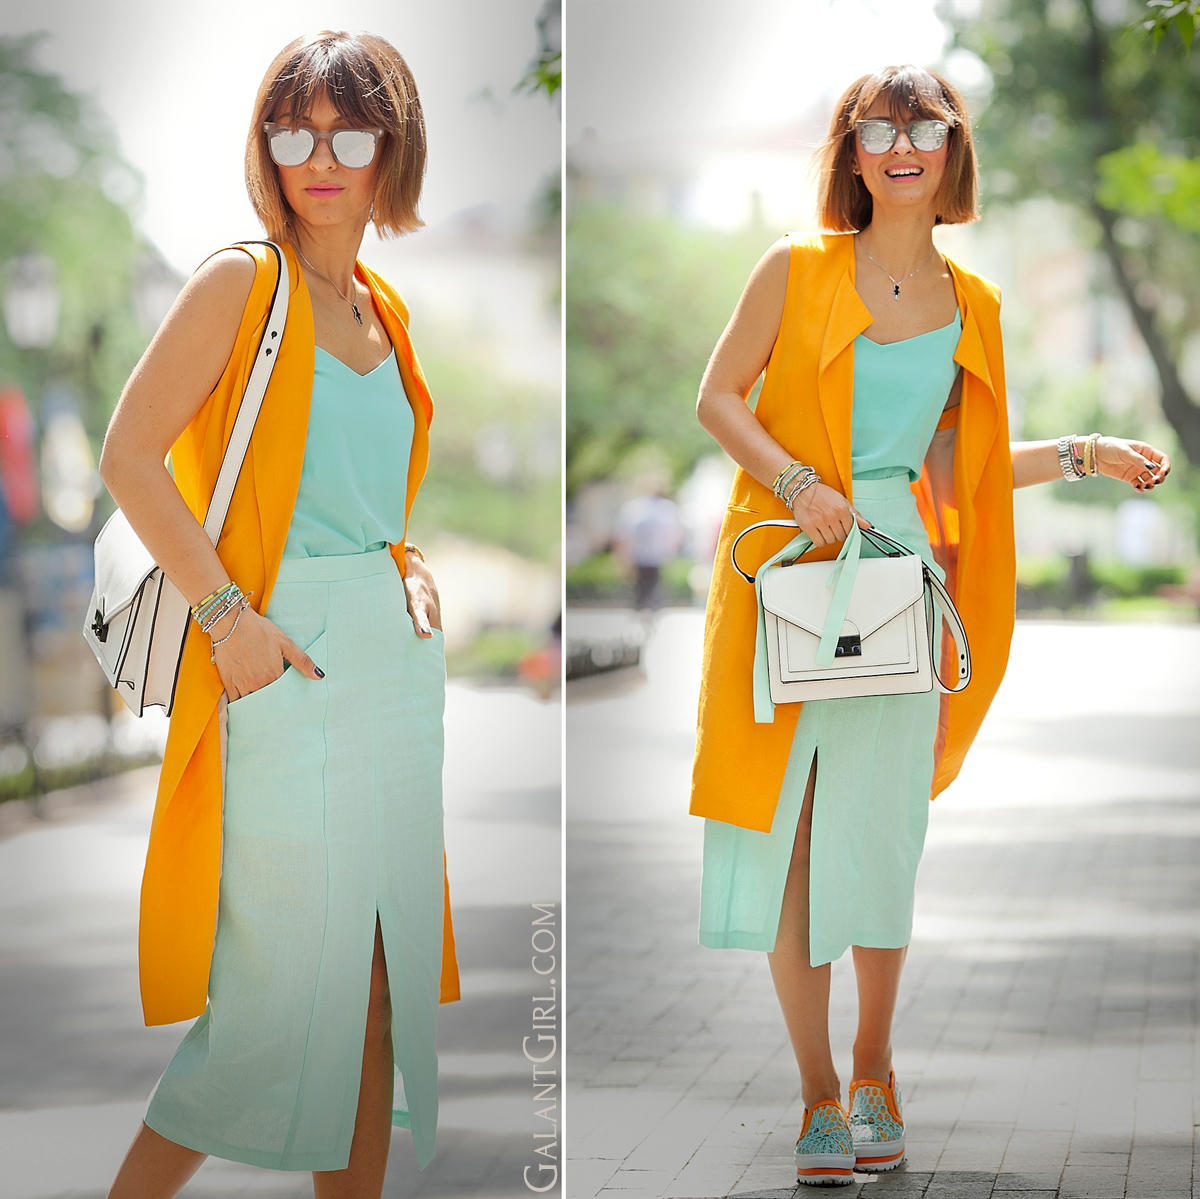 orange-linen-zara-vest-outfit-street-style-ideas-galant-girl